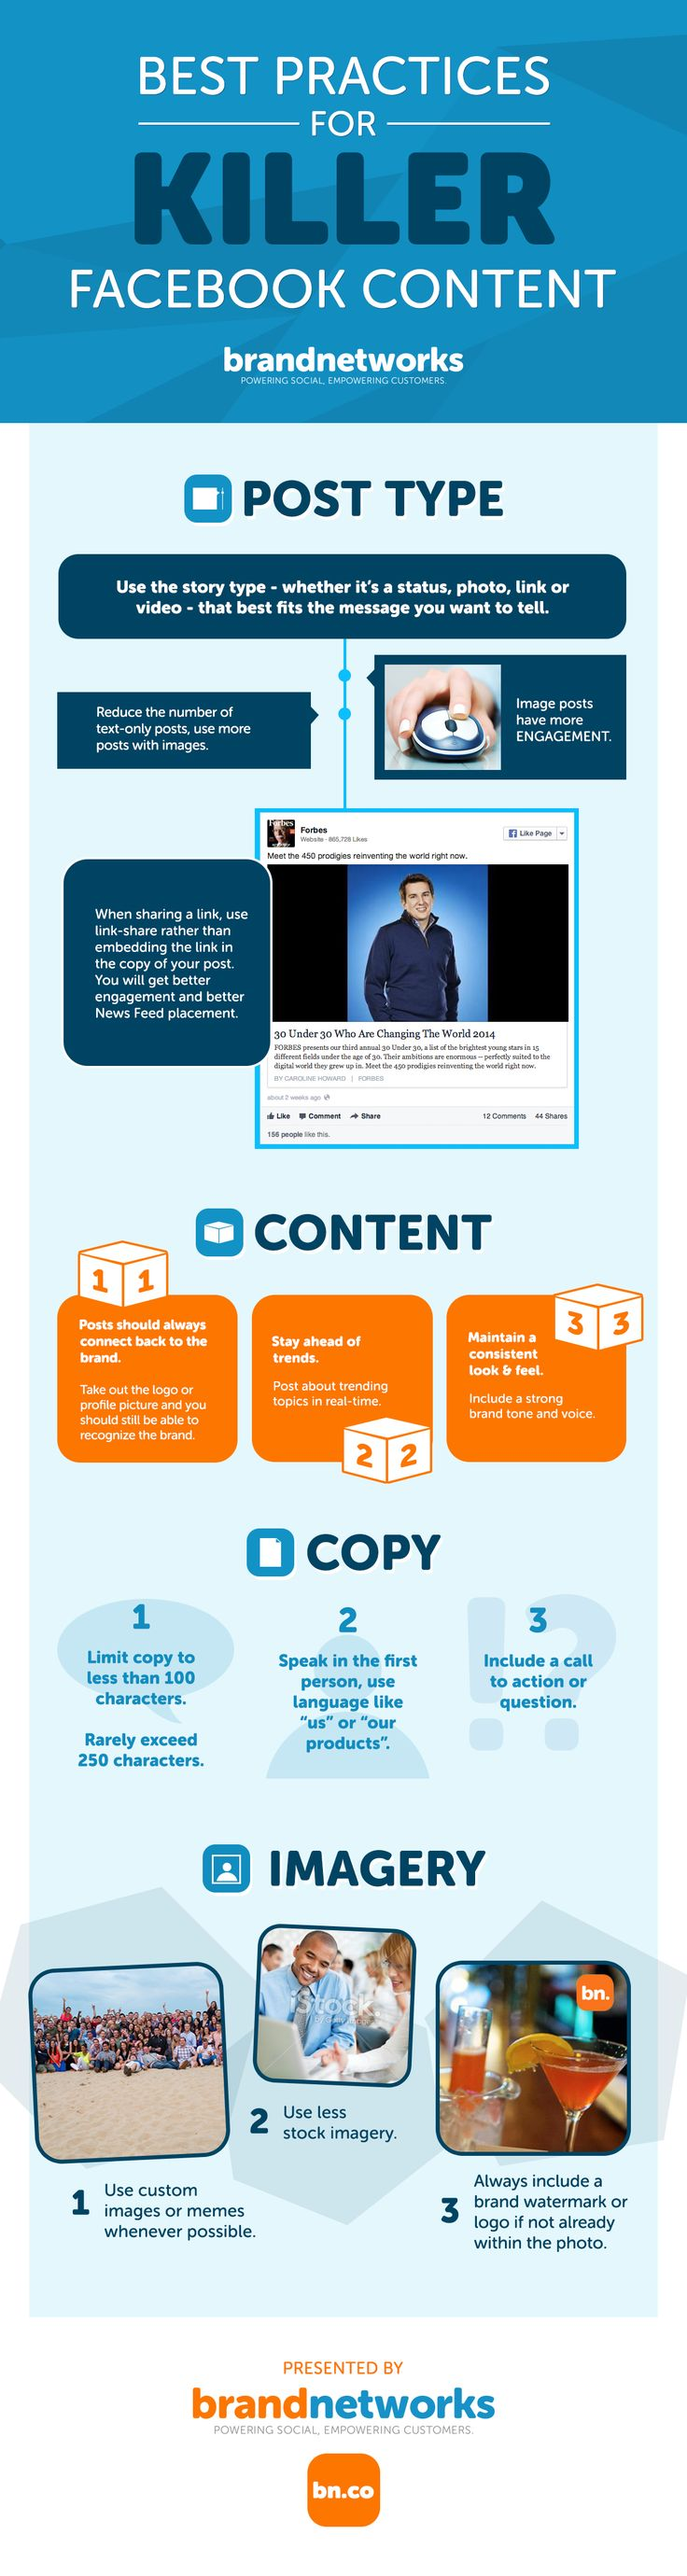 INFOGRAPHIC: What Social Marketers Need To Know About Facebook's Updated News Feed Algorithm - AllFacebook